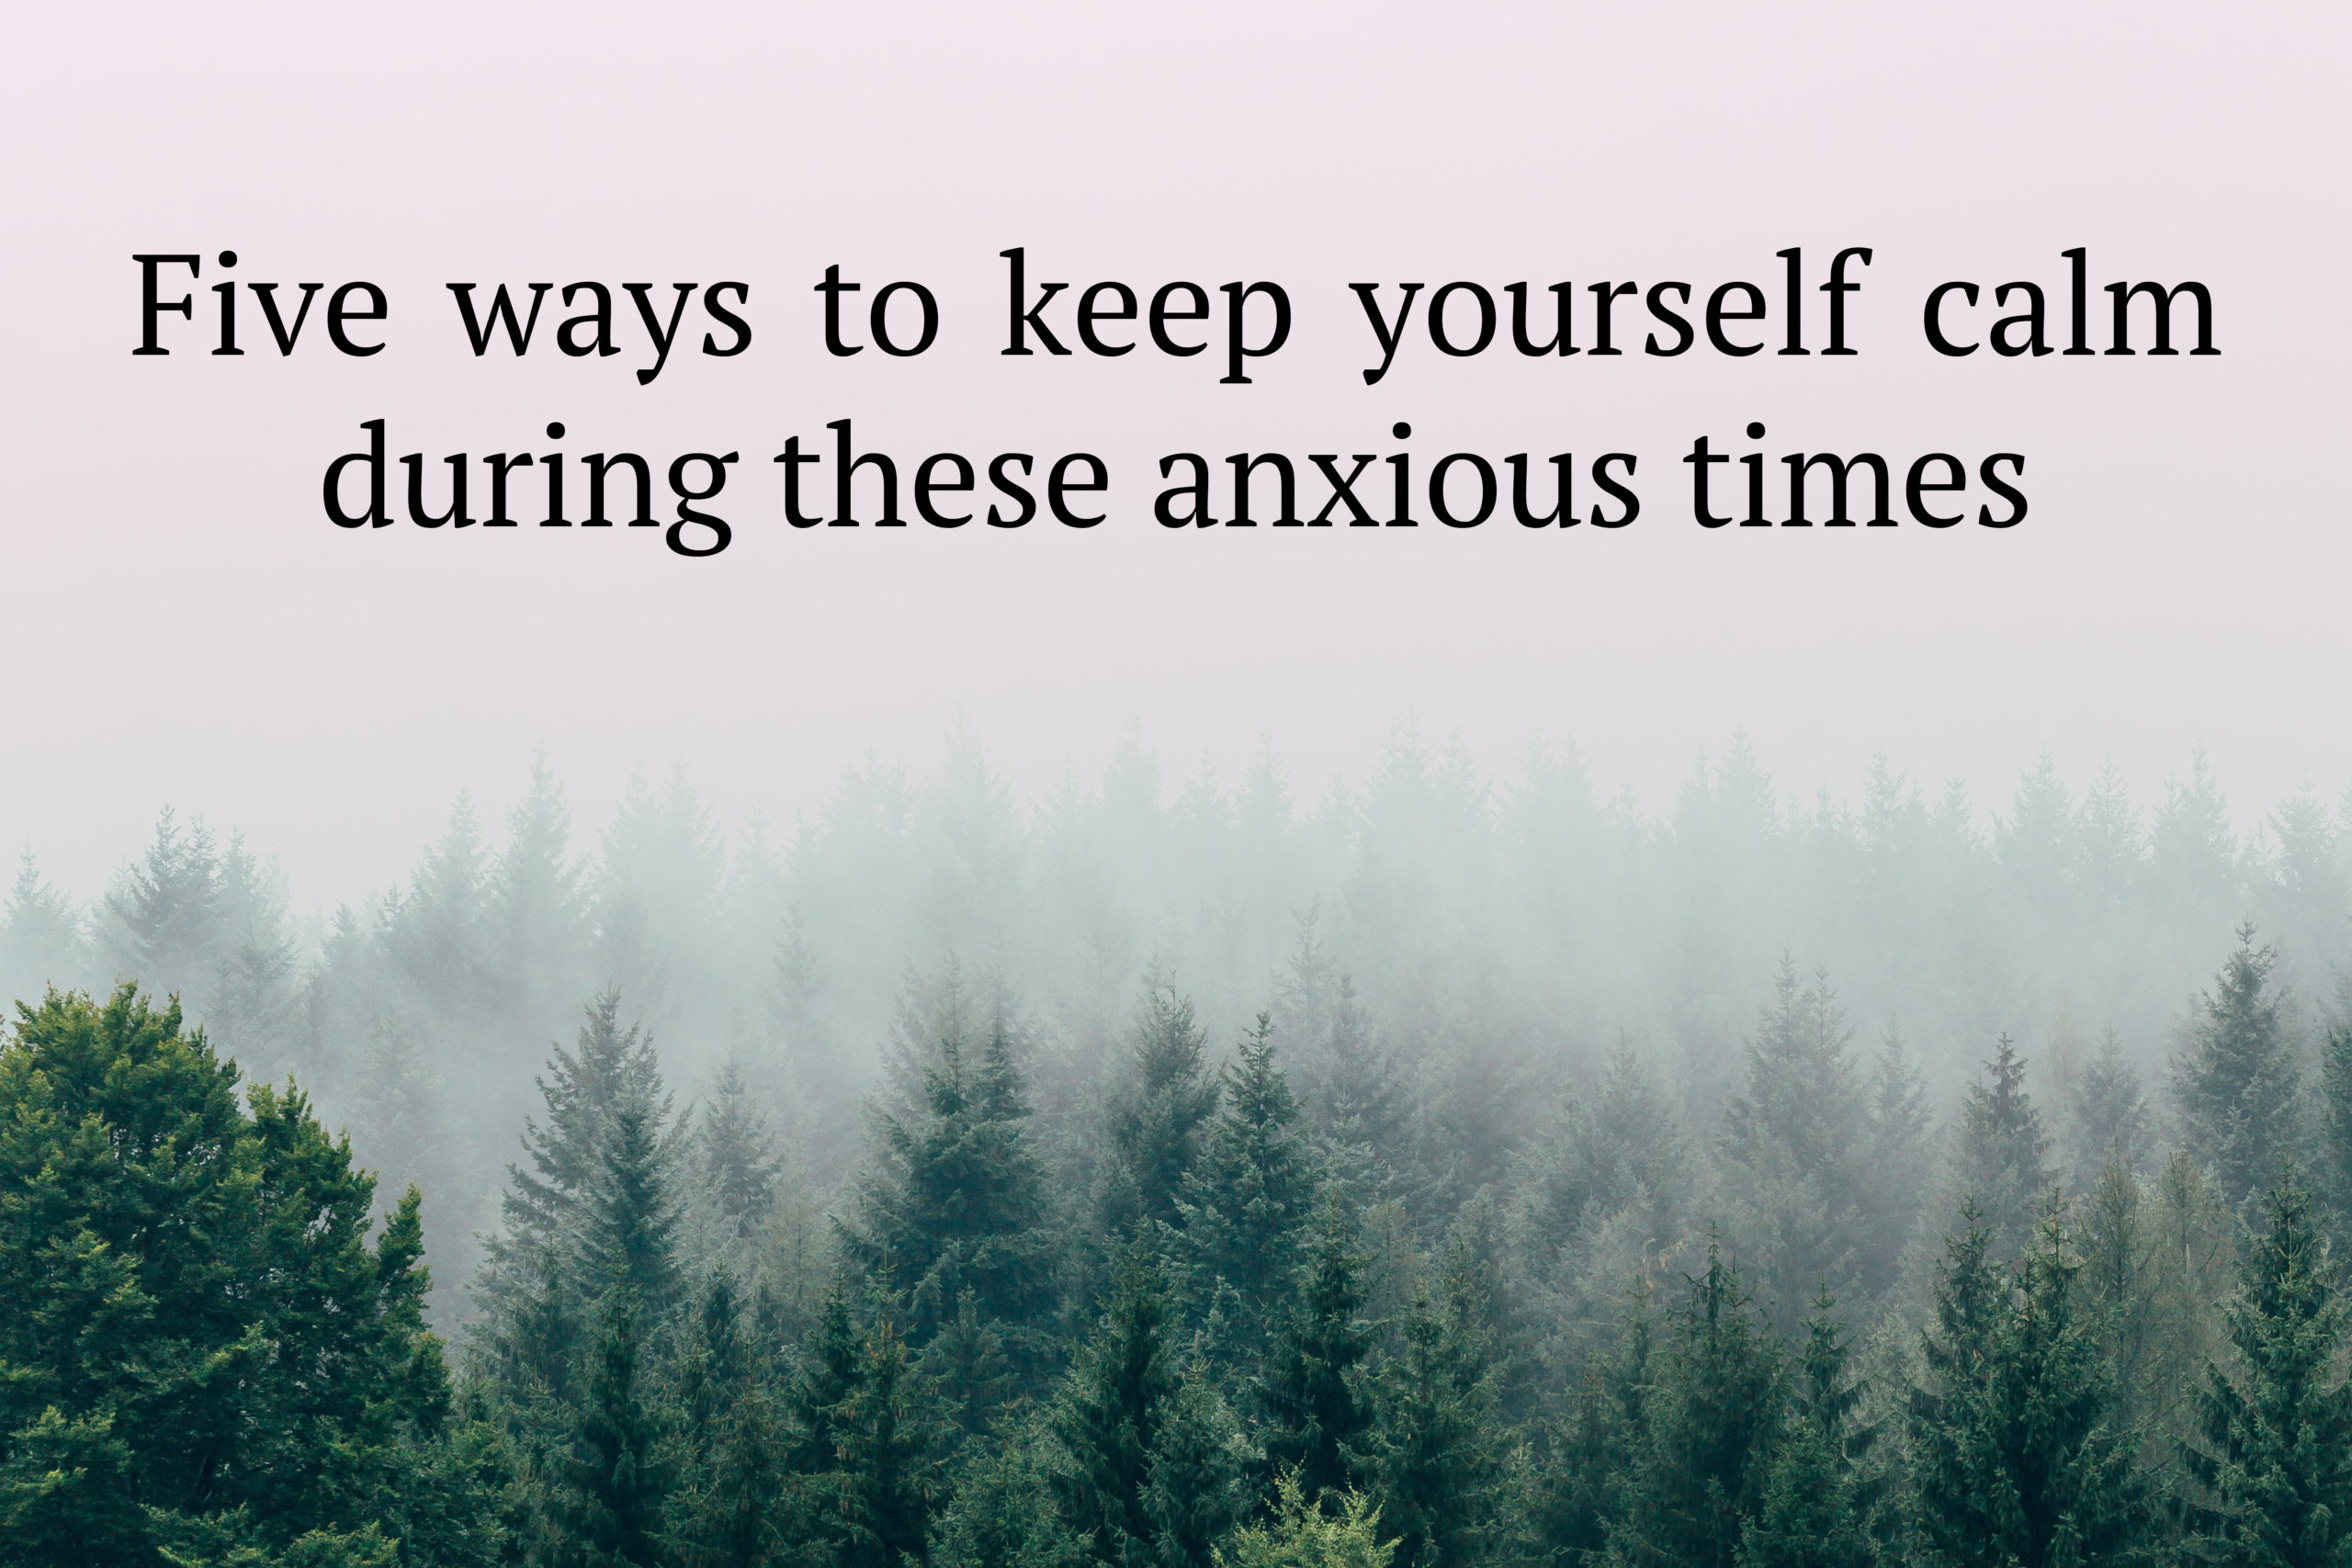 Five ways to keep yourself calm during these anxious times